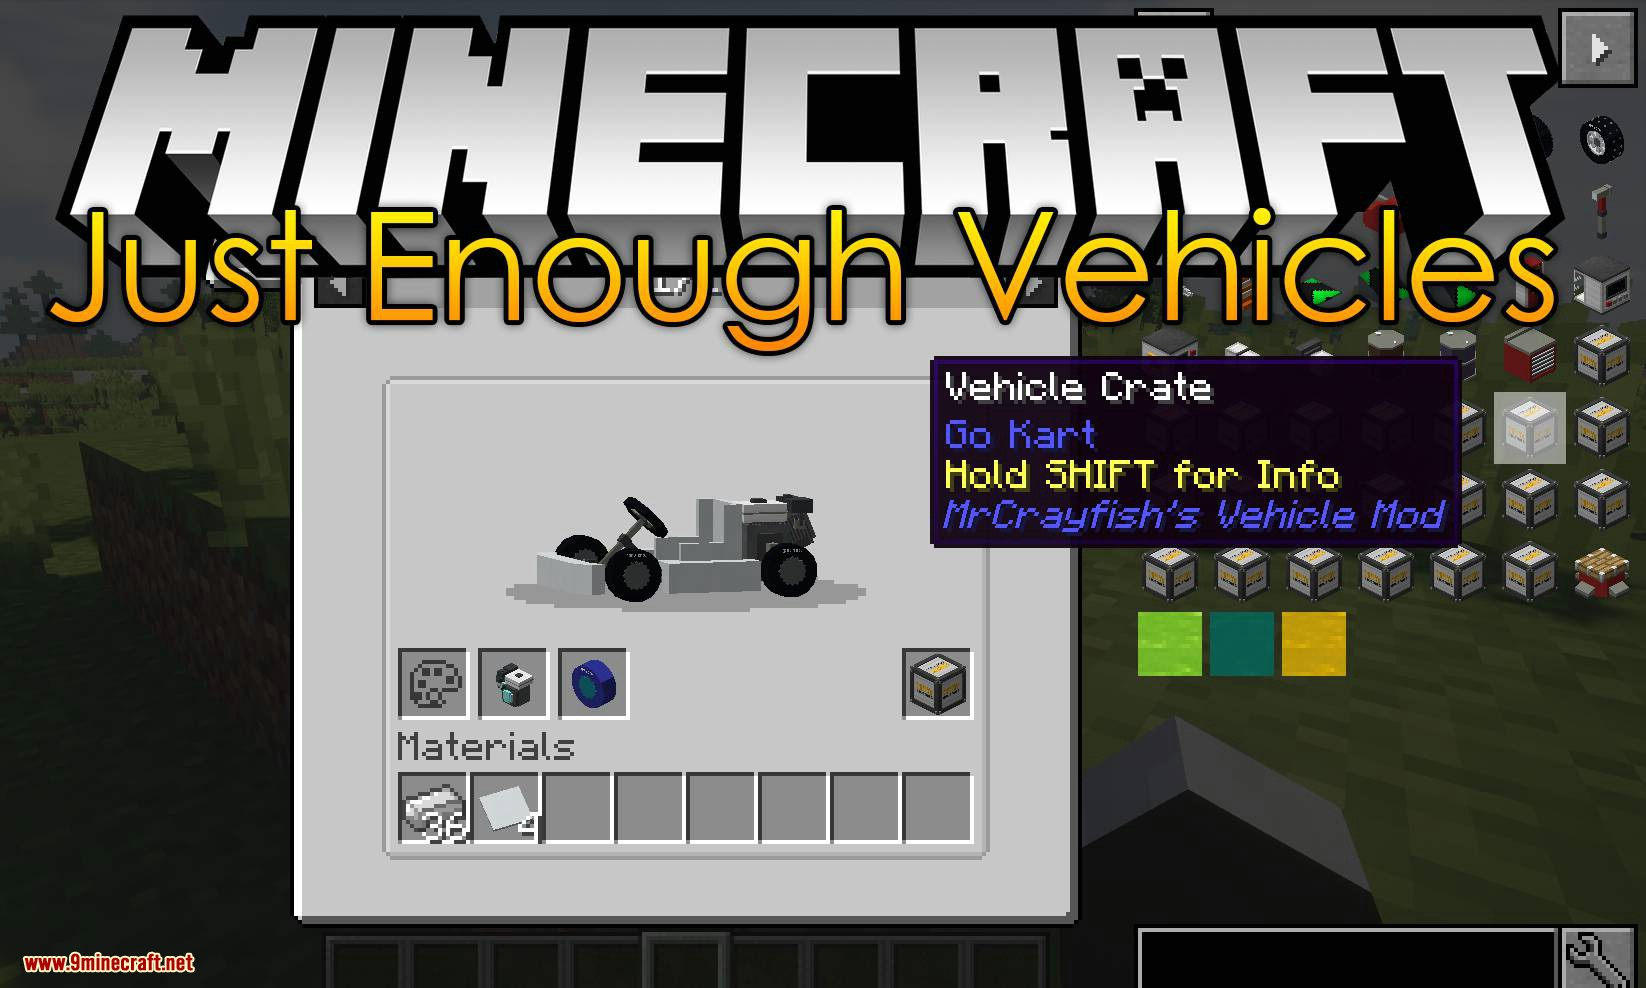 Just Enough Vehicles mod for minecraft logo